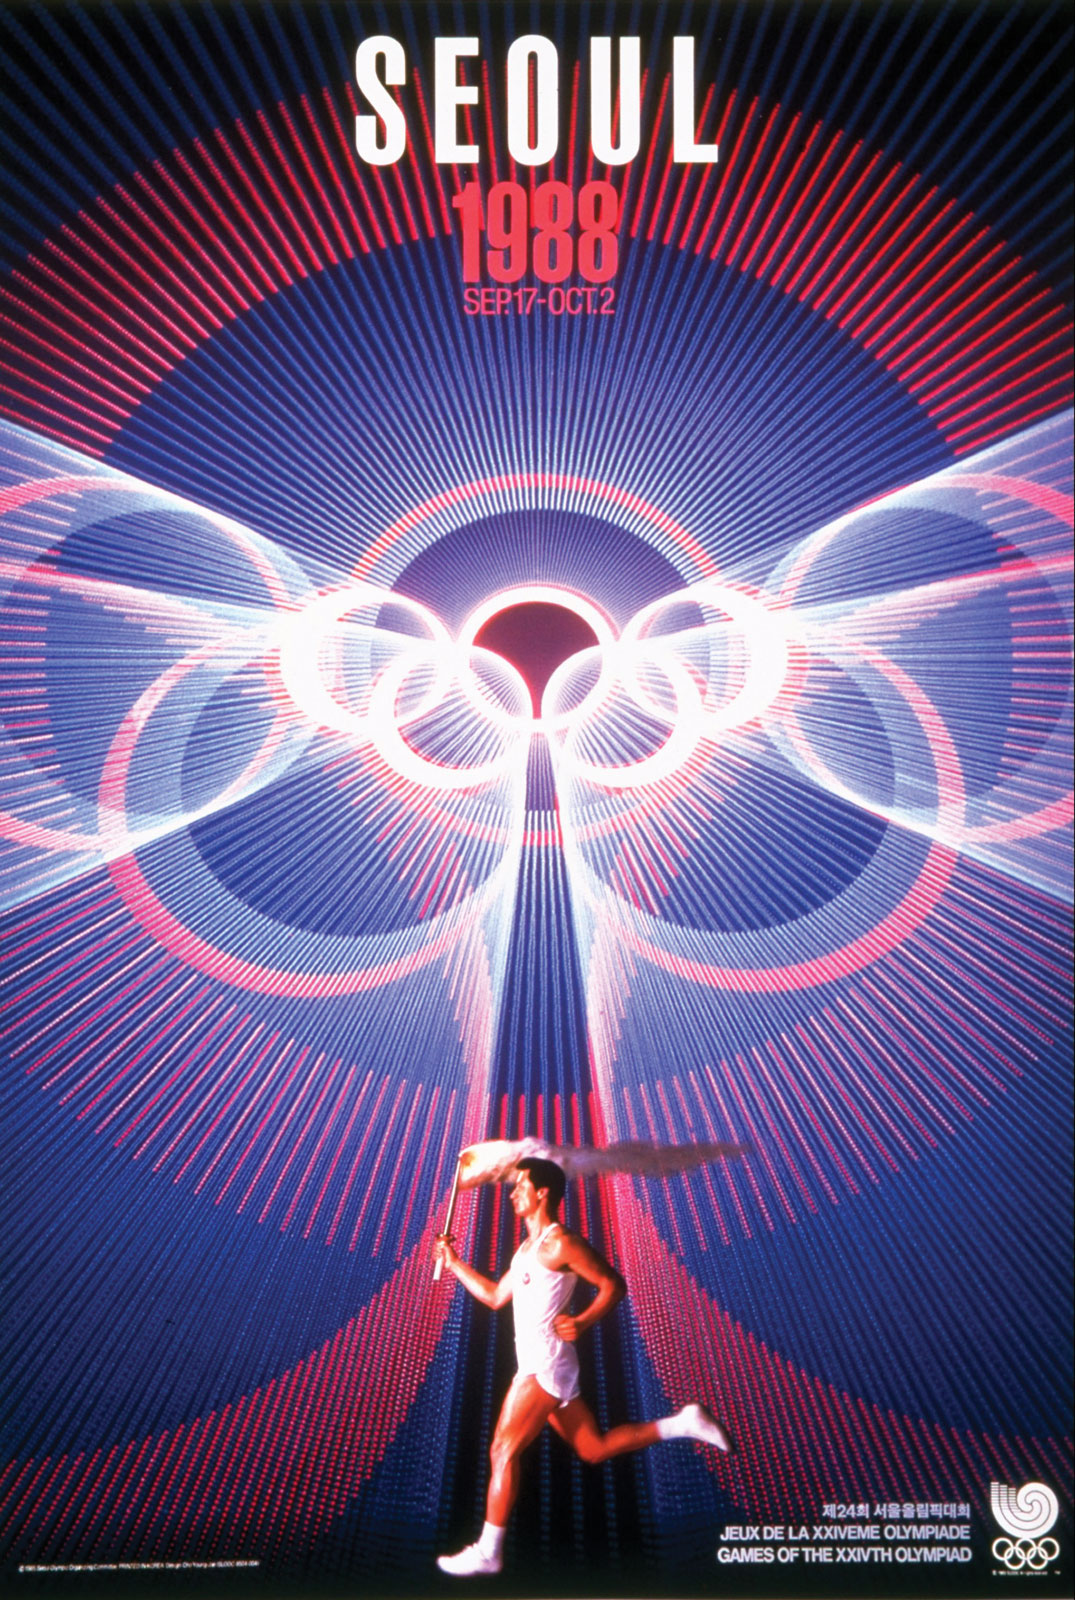 1988-seoul-summer-olympics-poster